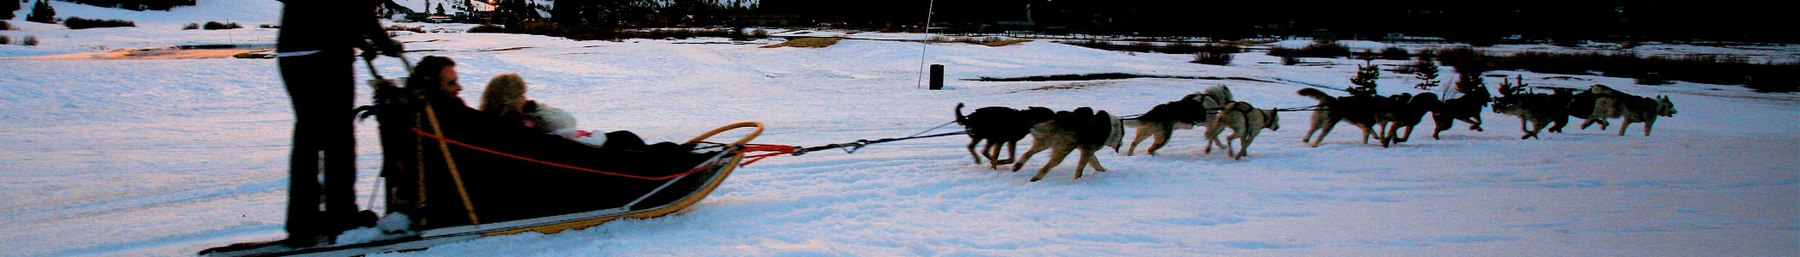 Sled dogs sunset banner.jpg